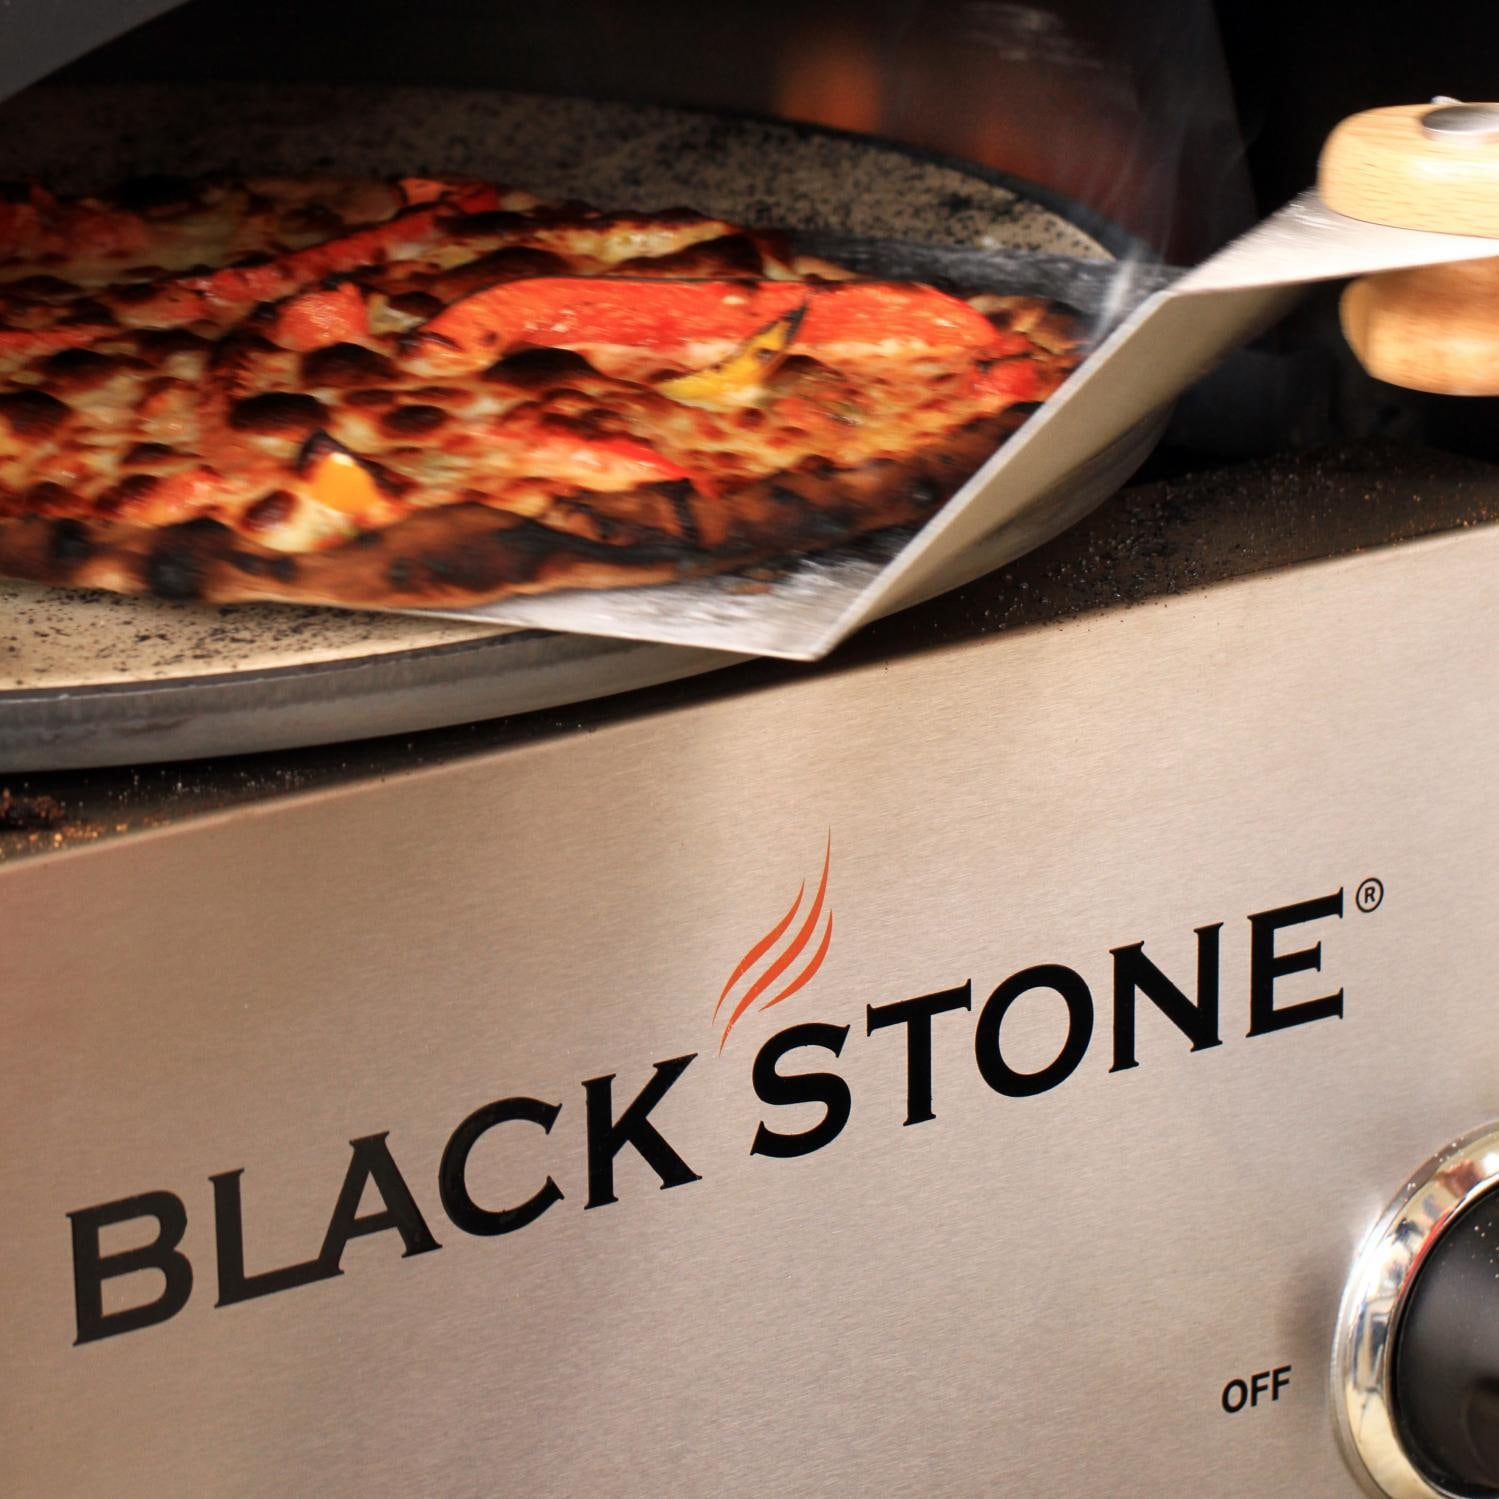 blackstone propane gas outdoor convection pizza oven on